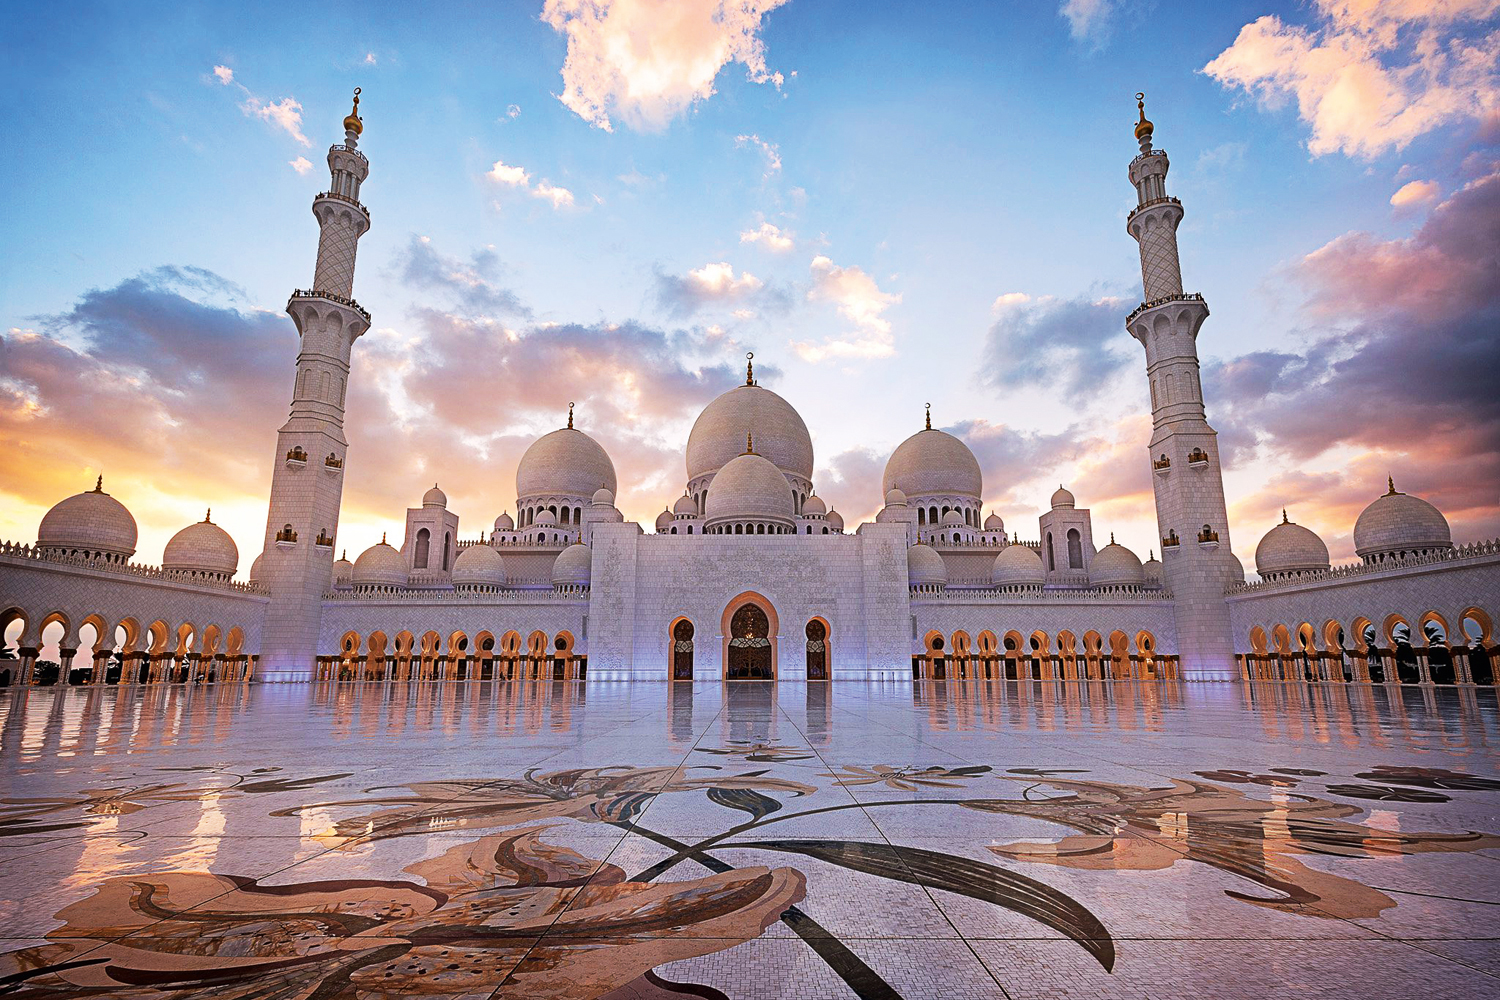 Abu Dhabi's Sheikh Zayed Grand Mosque named one of the best three landmarks in the world | Attractions | Time Out Abu Dhabi